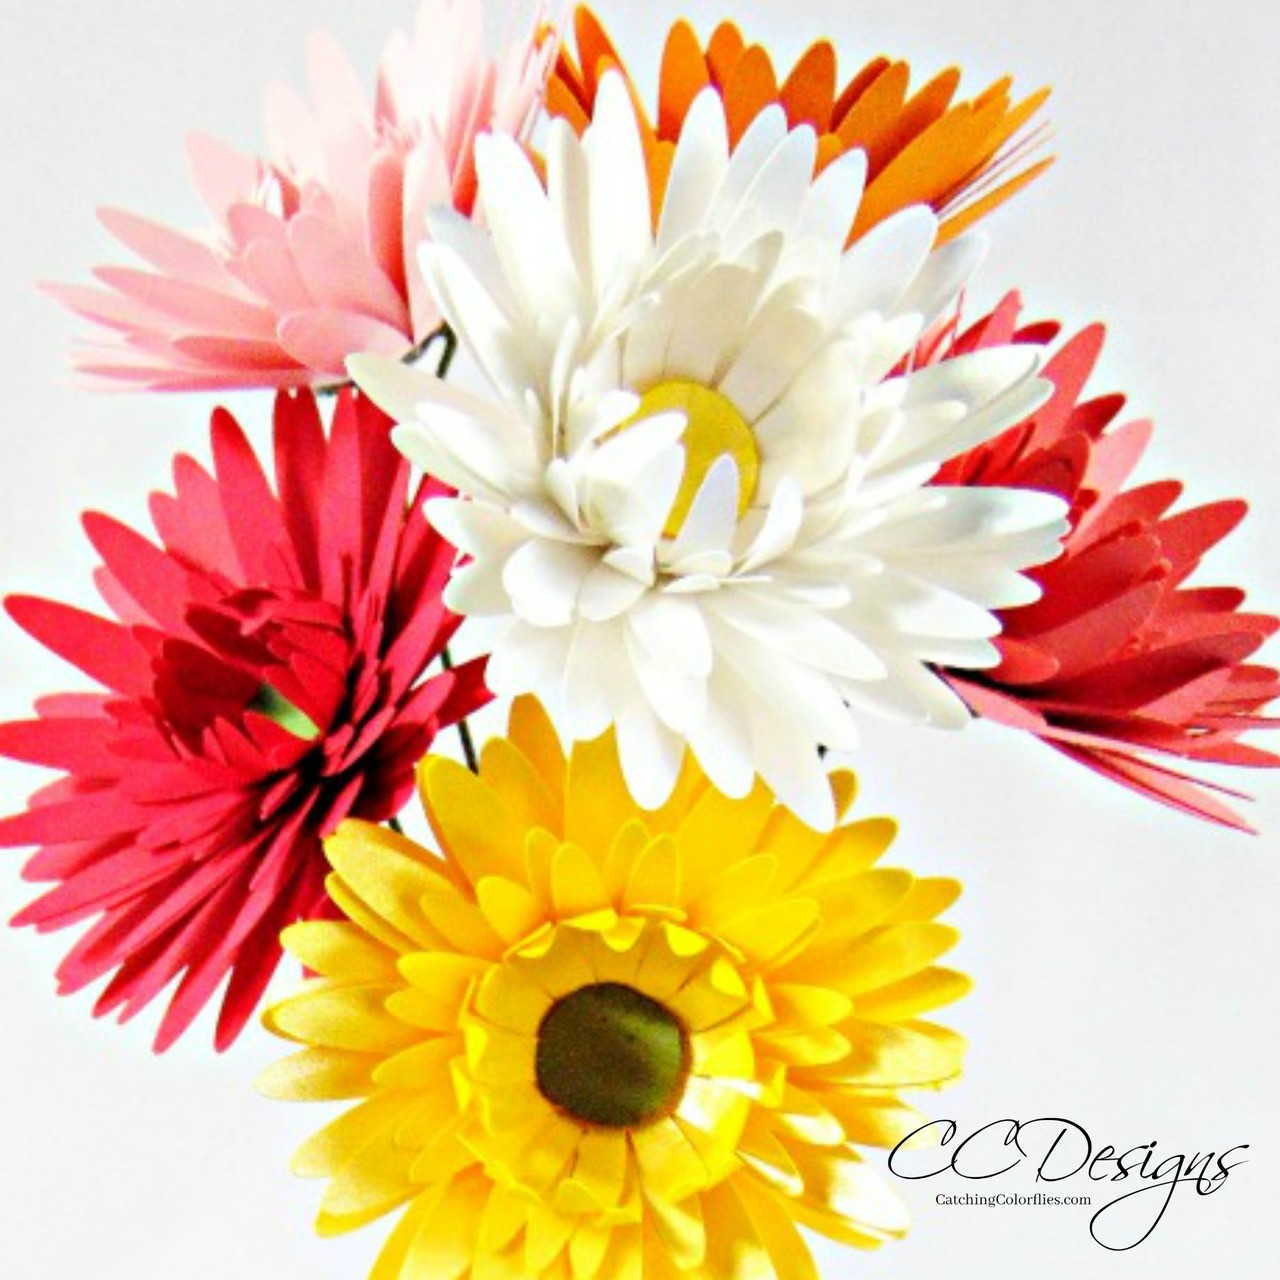 Small gerbera daisy paper flower template catching colorflies izmirmasajfo